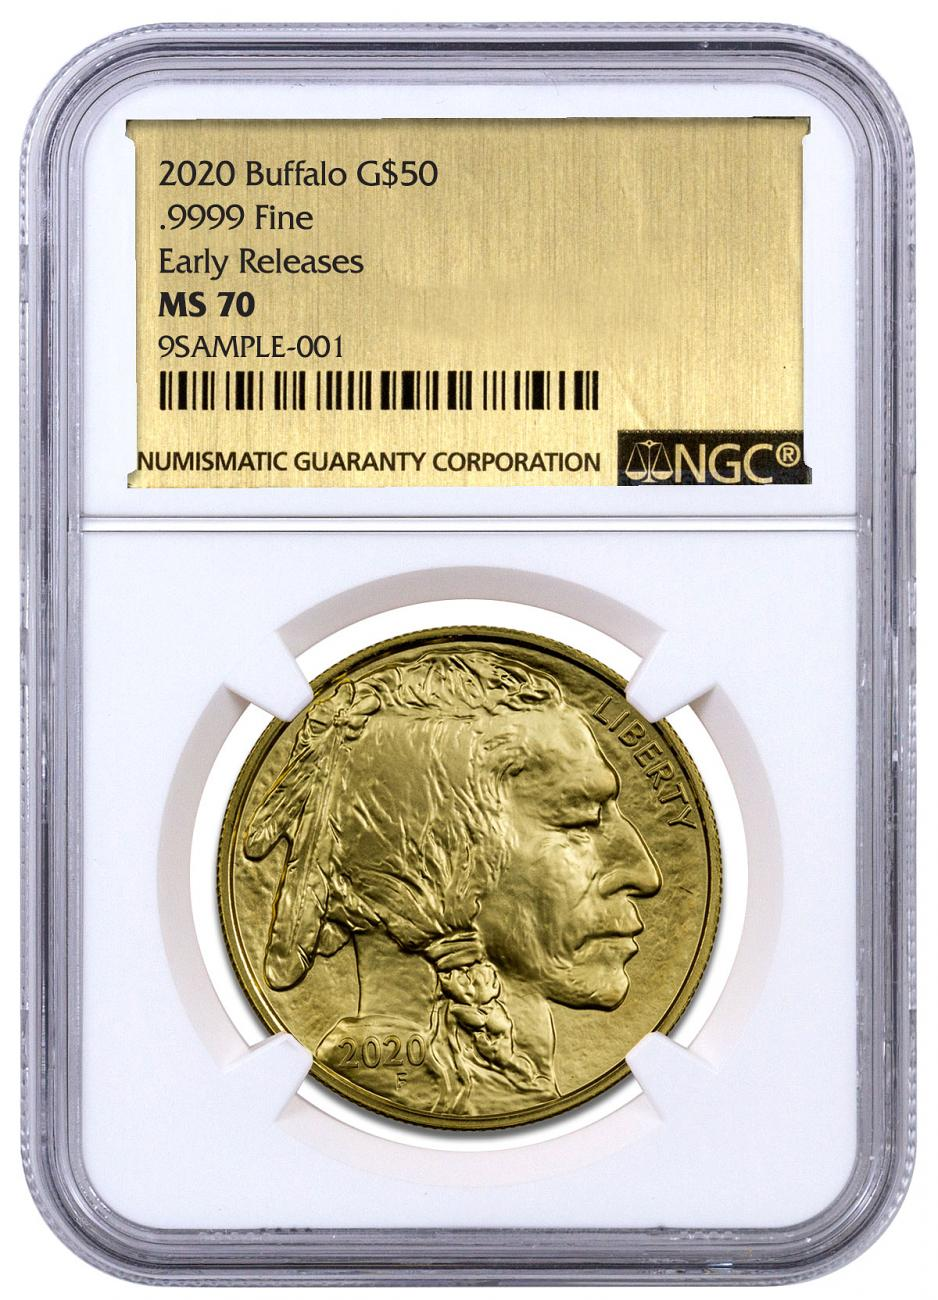 2020 1 oz Gold Buffalo $50 Coin NGC MS70 ER Exclusive Gold Foil Label